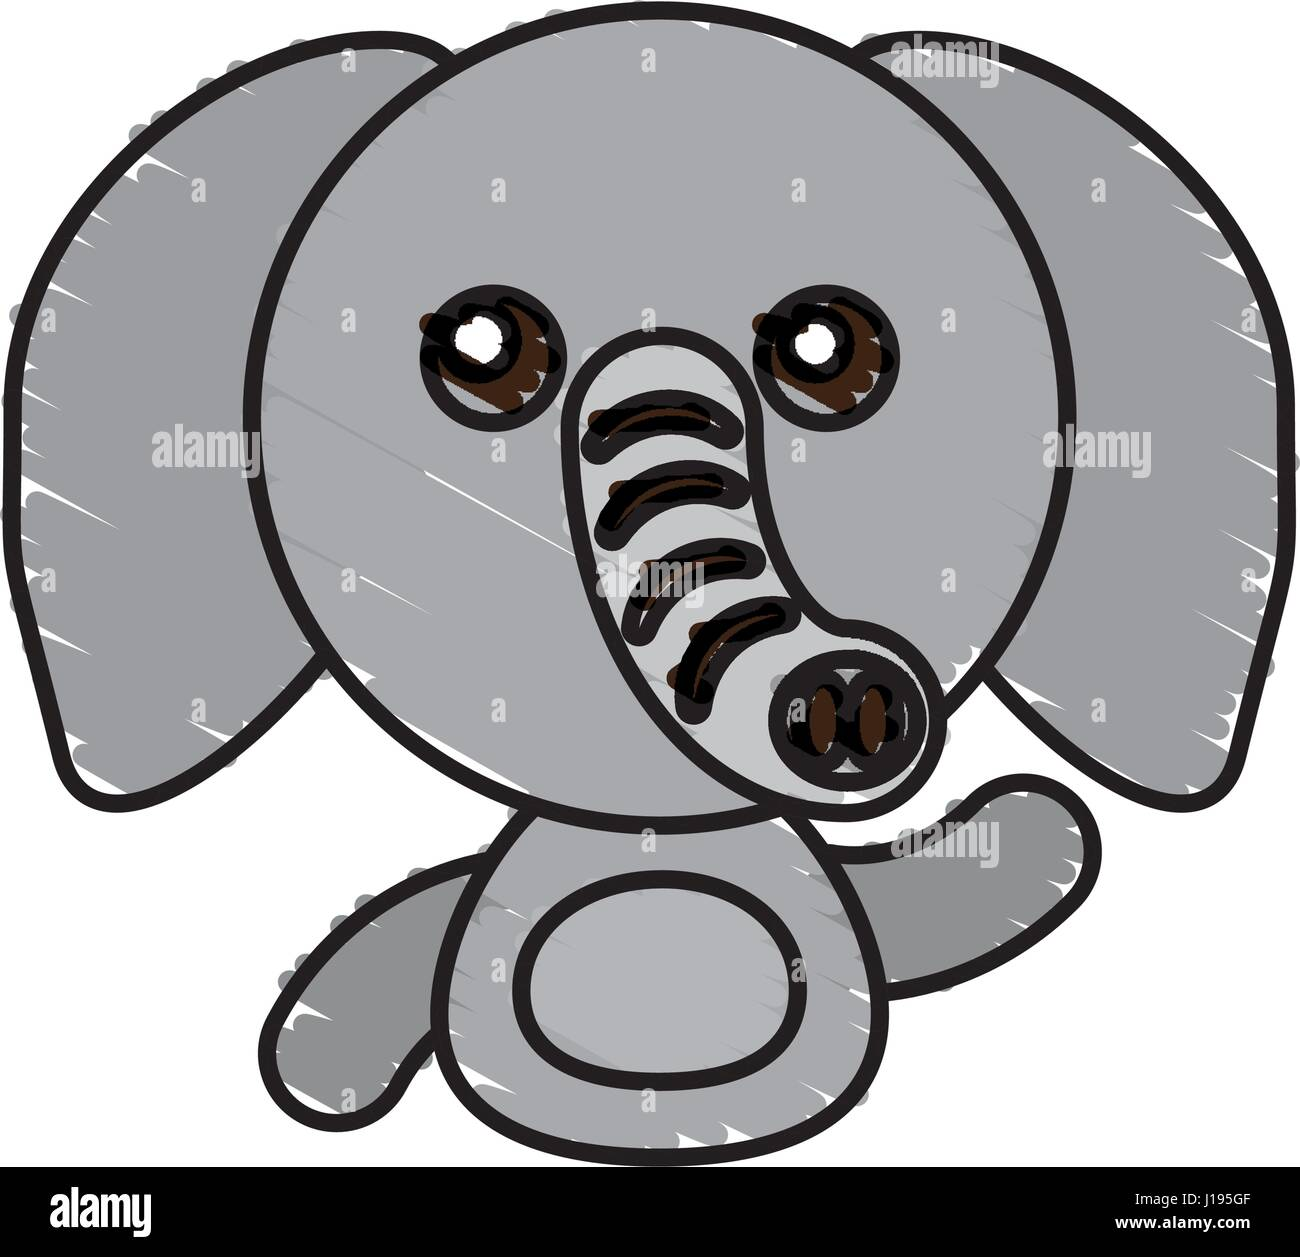 Comic Elephant Stockfotos & Comic Elephant Bilder - Alamy